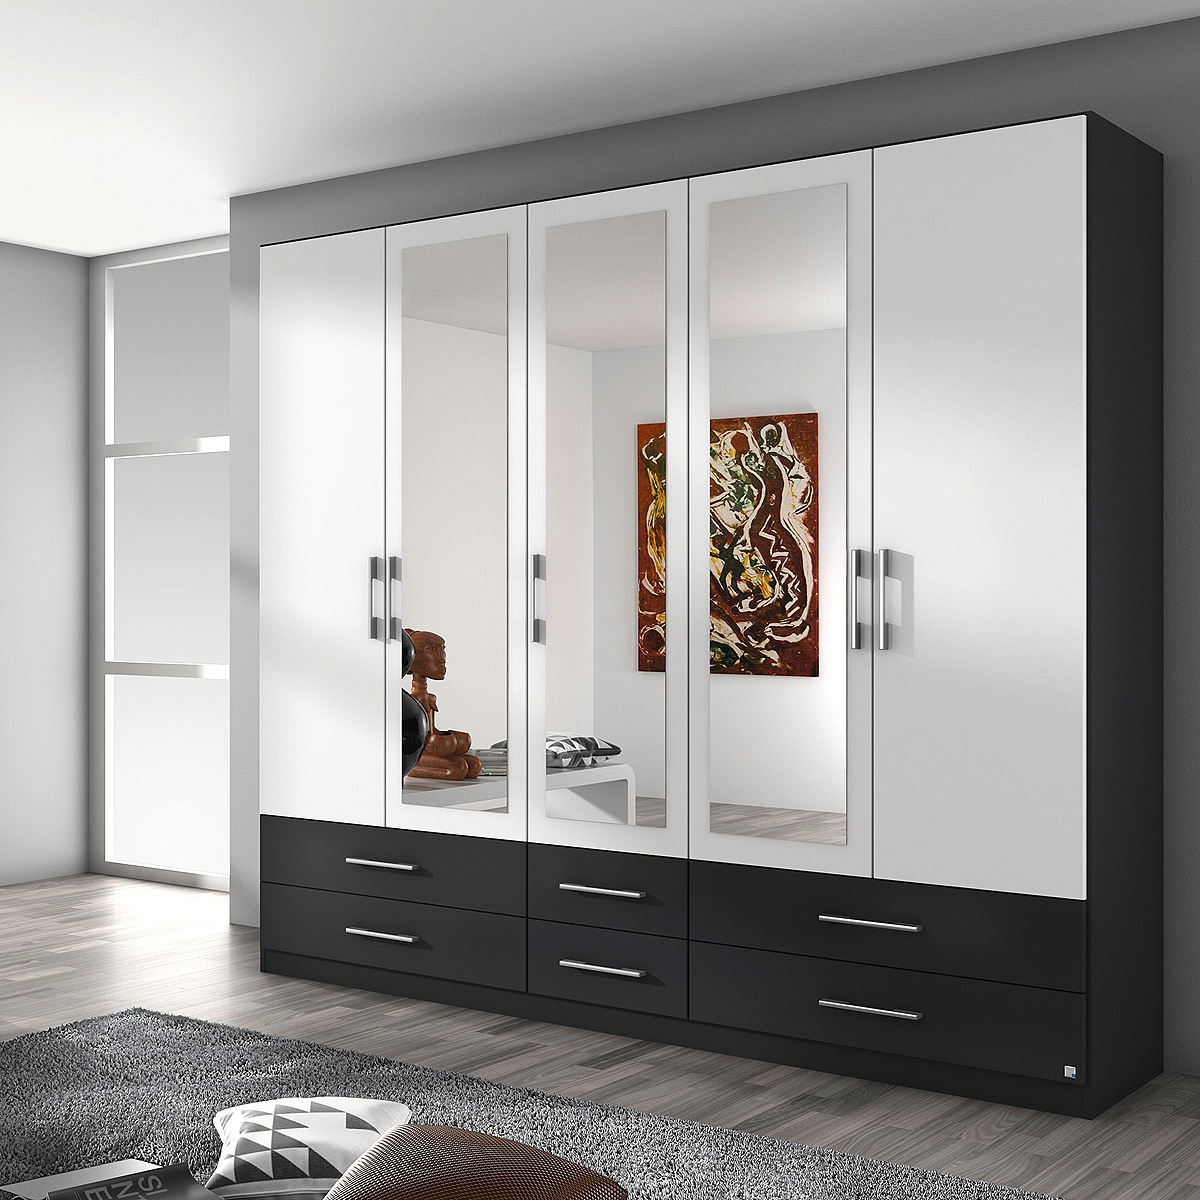 kleiderschrank hersbruck schrank in wei grau metallic. Black Bedroom Furniture Sets. Home Design Ideas